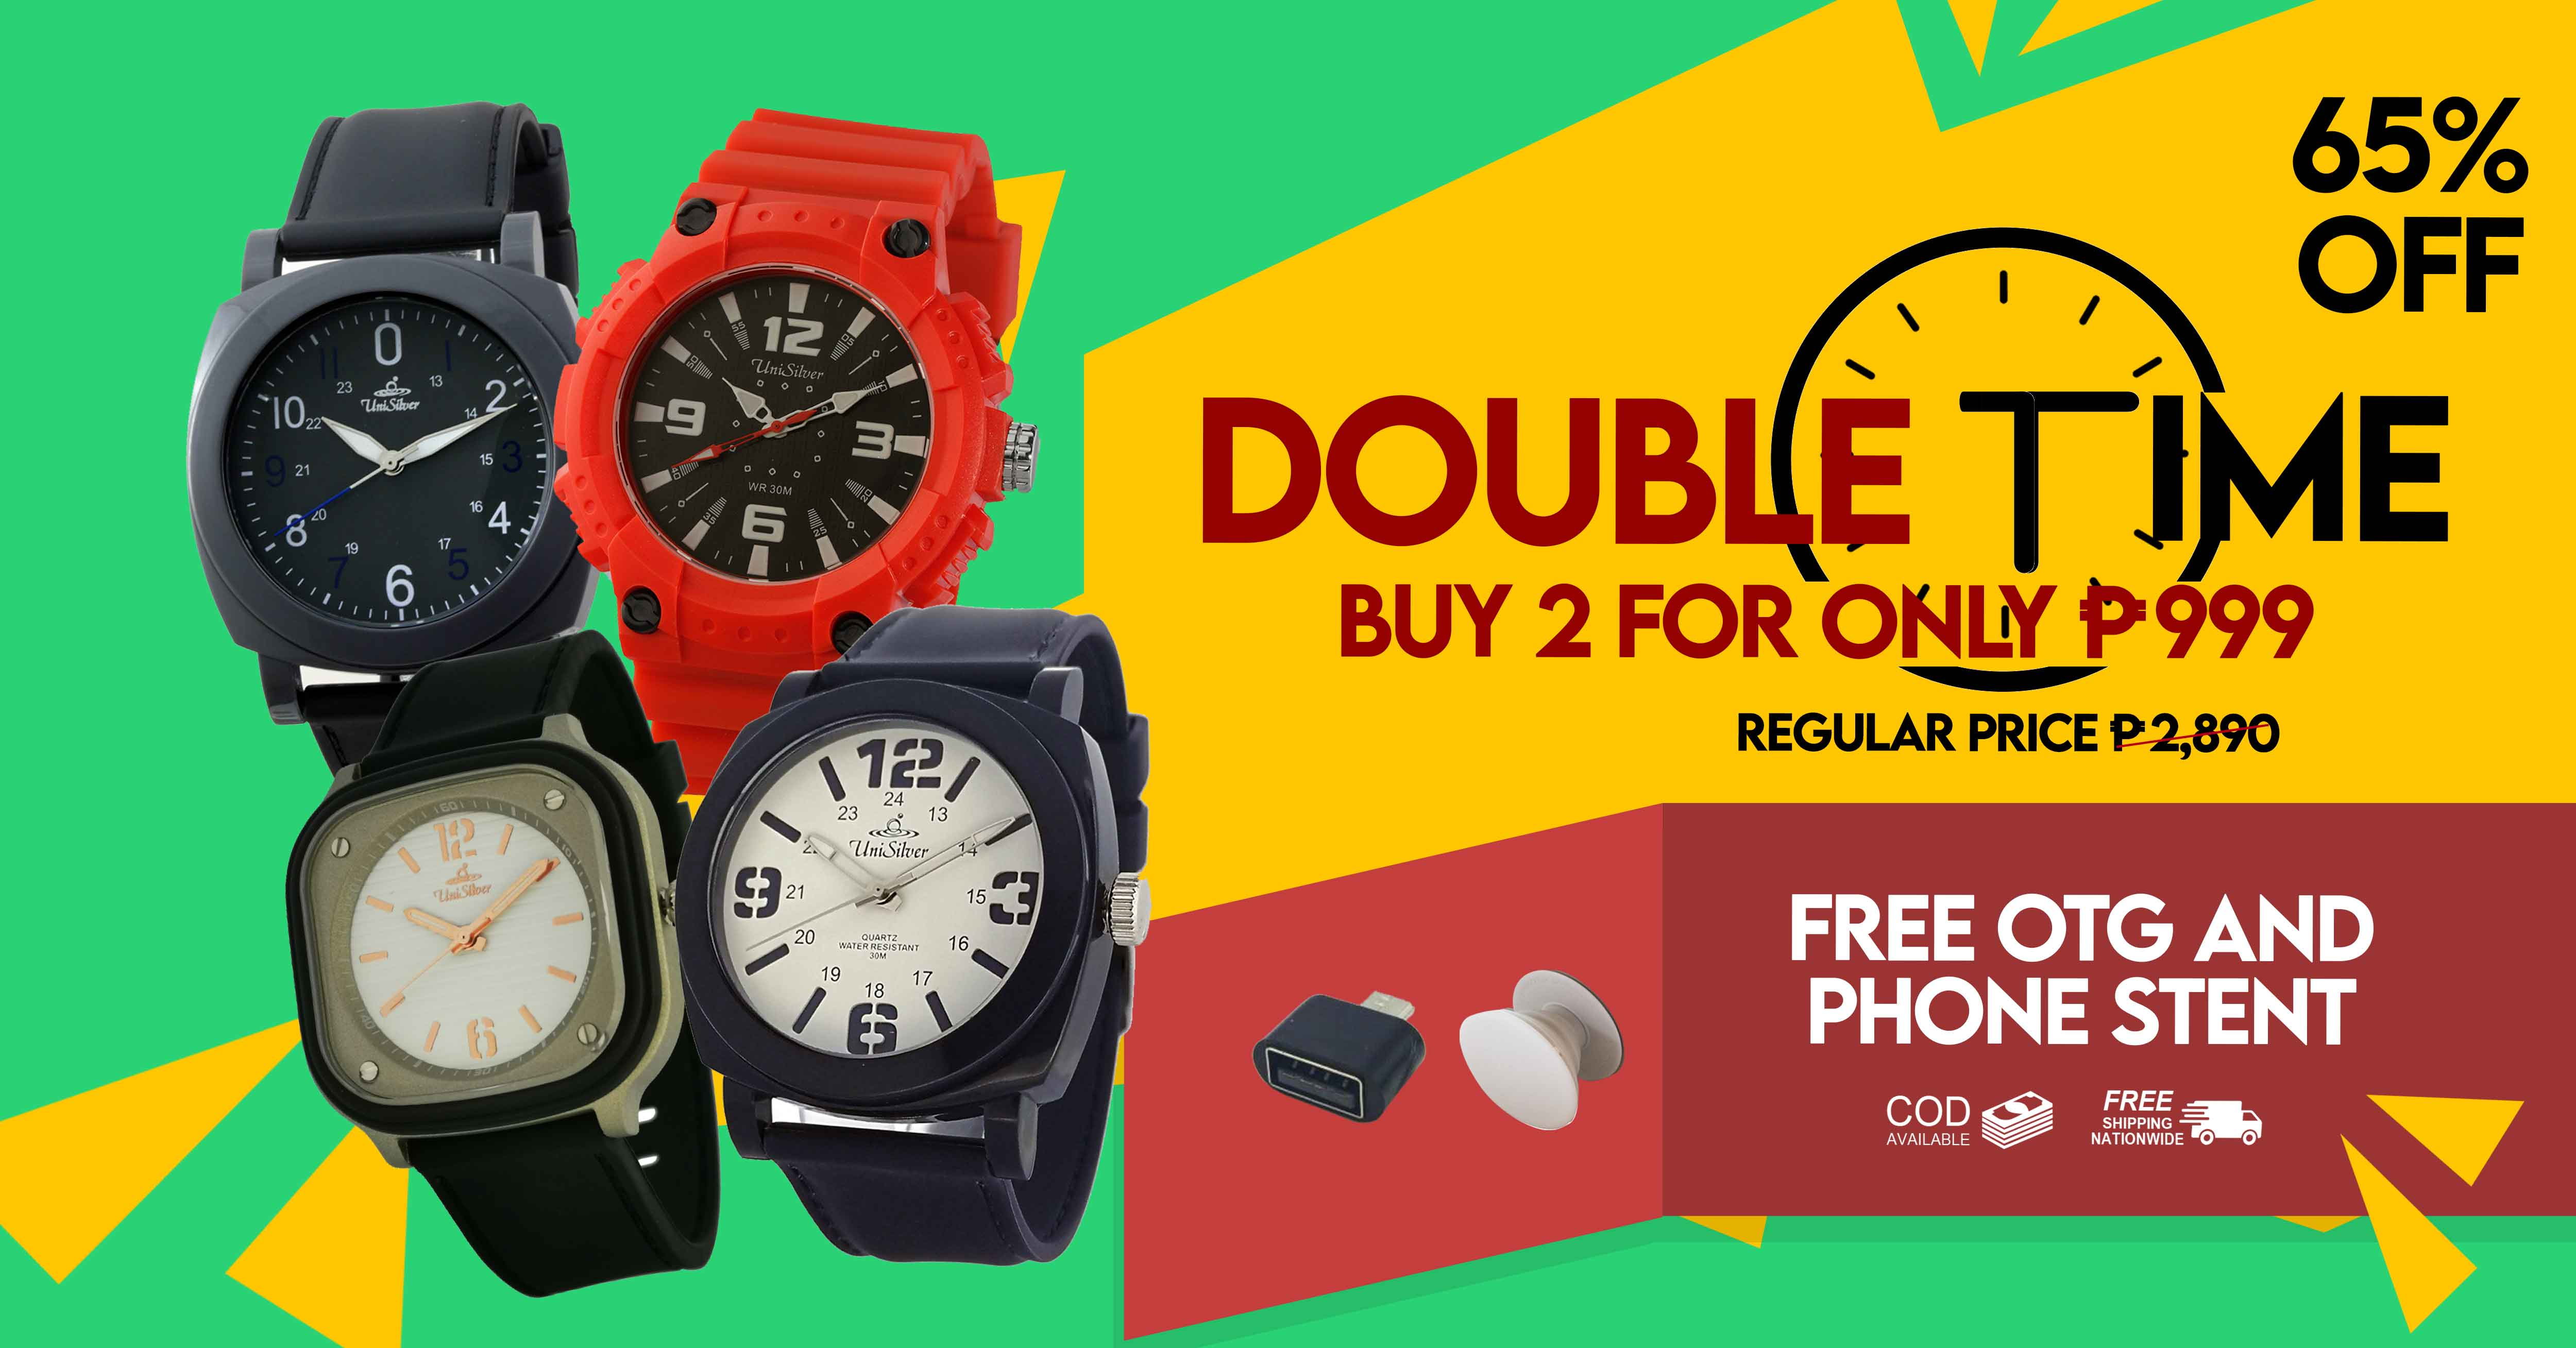 Turn heads twice with this Double Time Deal from UniSilver TIME!  Pick any 2 watches for PHP999 only!  That's 65% off from the regular price!  Plus you'll also get for FREE a mobile phone stent and OTG adapter.  Free shipping nationwide and cash on delivery option is available. This promo is only available online  http://www.unisilvertime.com/